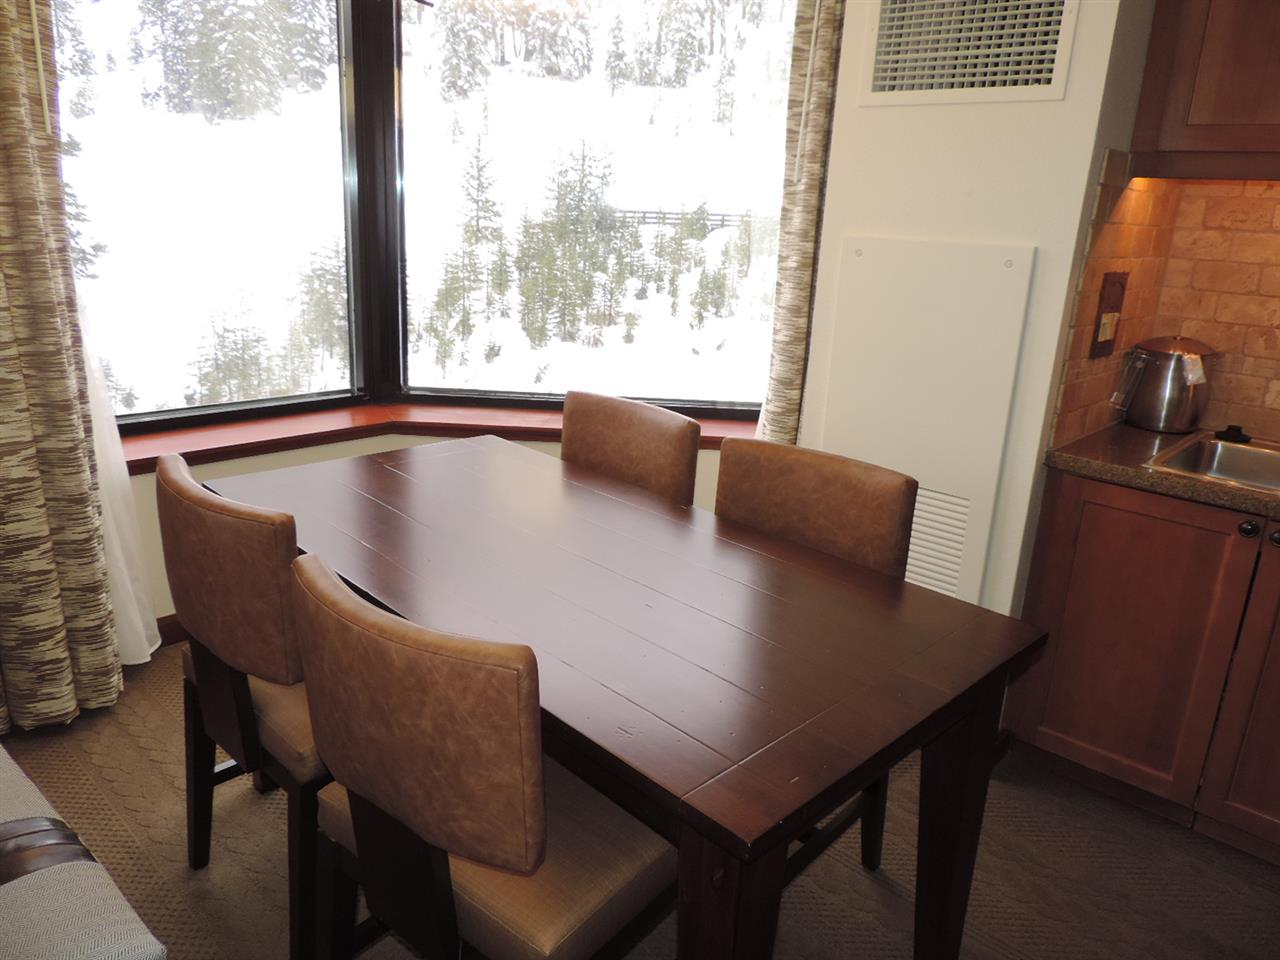 Additional photo for property listing at 400 Squaw Creek Road  奥林匹克山, 加利福尼亚州 96146 美国